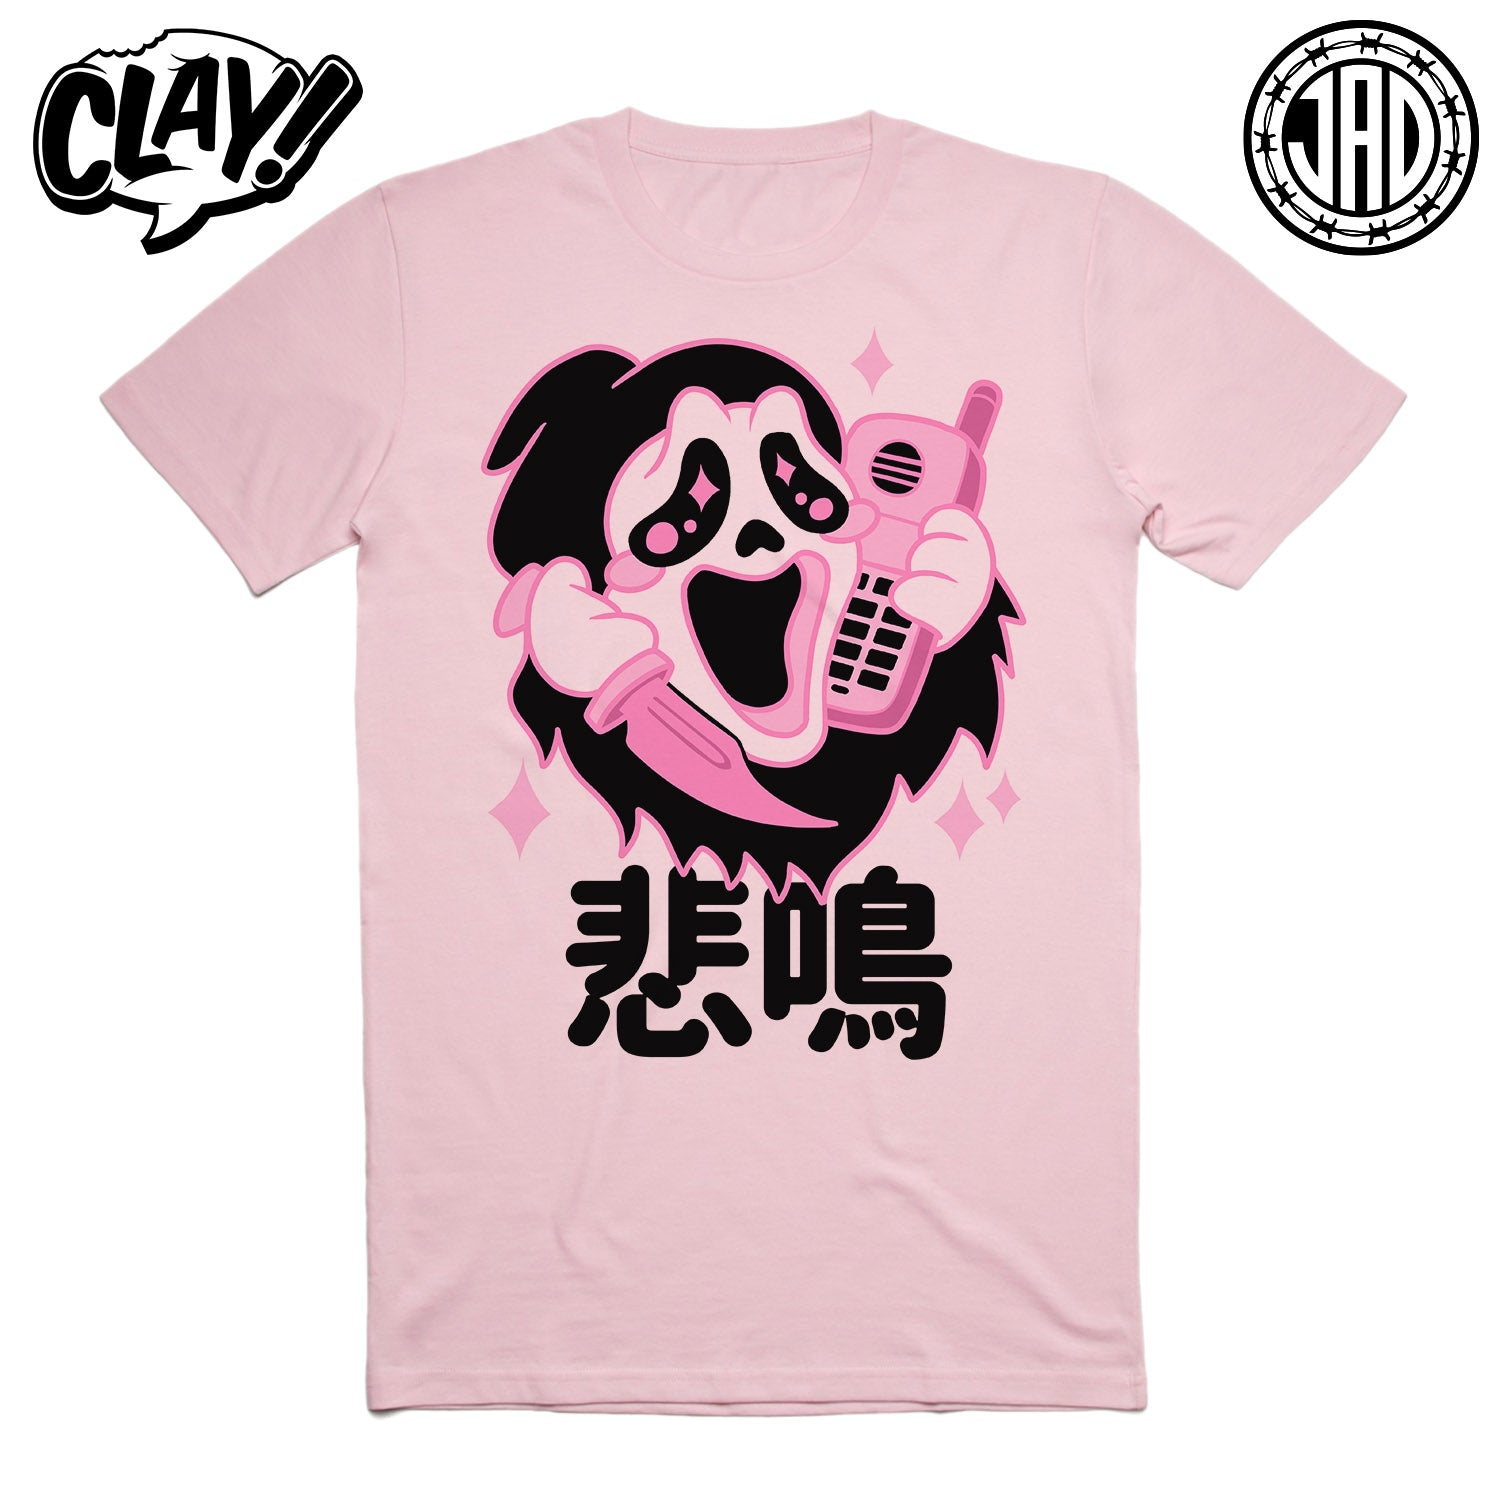 Kawaii Ghost - Men's (Unisex) Tee